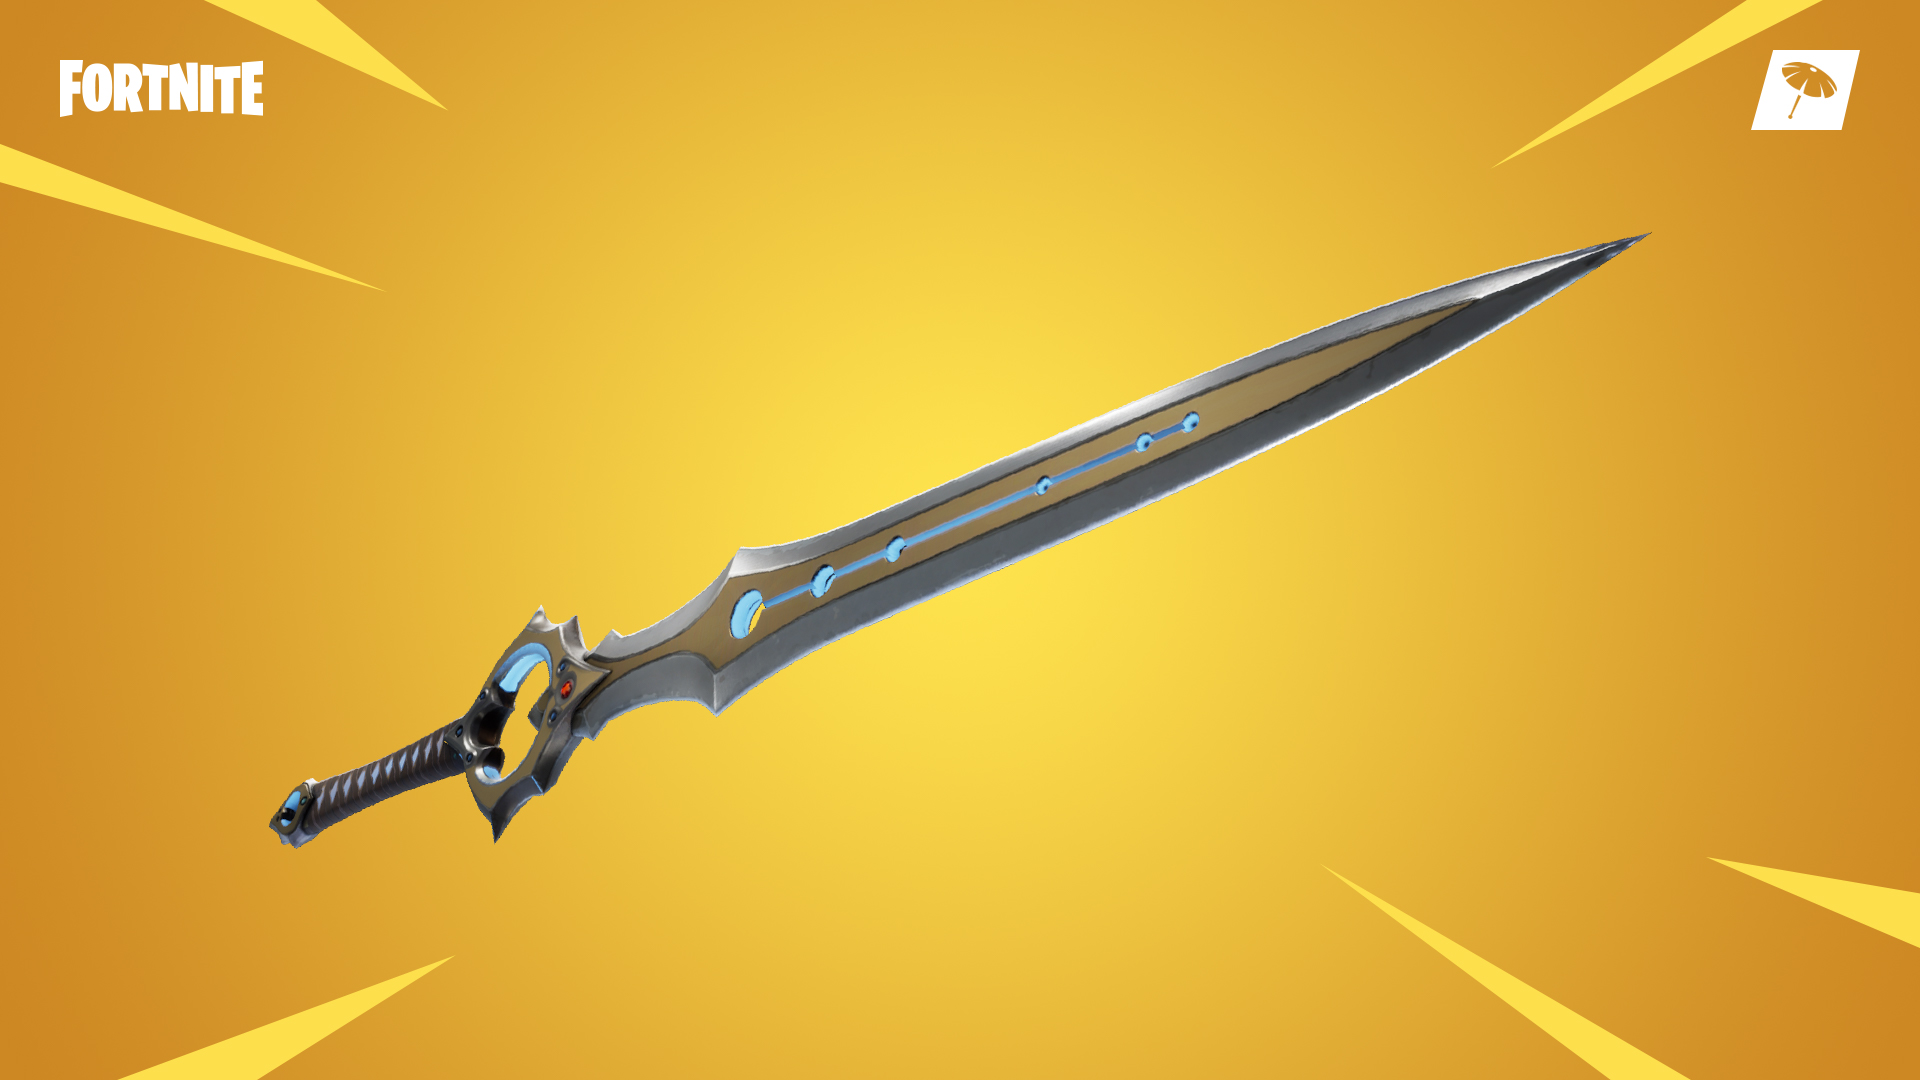 Fortnite pulls 'overpowered' Infinity Blade weapon from game after it made users virtually invincible